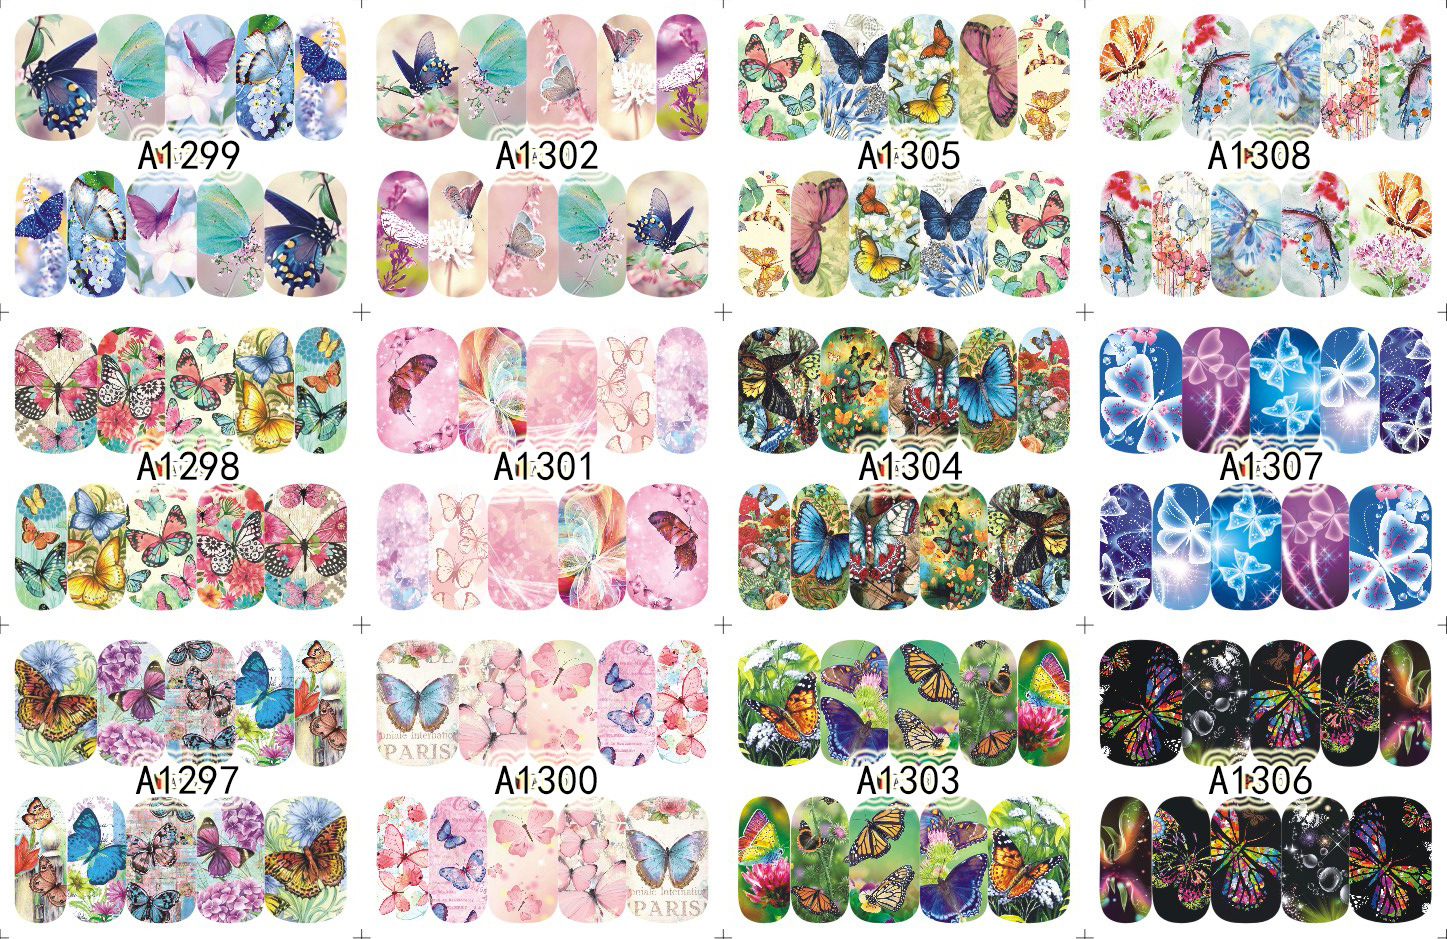 YZW12-in-One 2017 New Style Water Transfer Adhesive Paper Small Butterfly Cute Nail Sticker A1297-1308